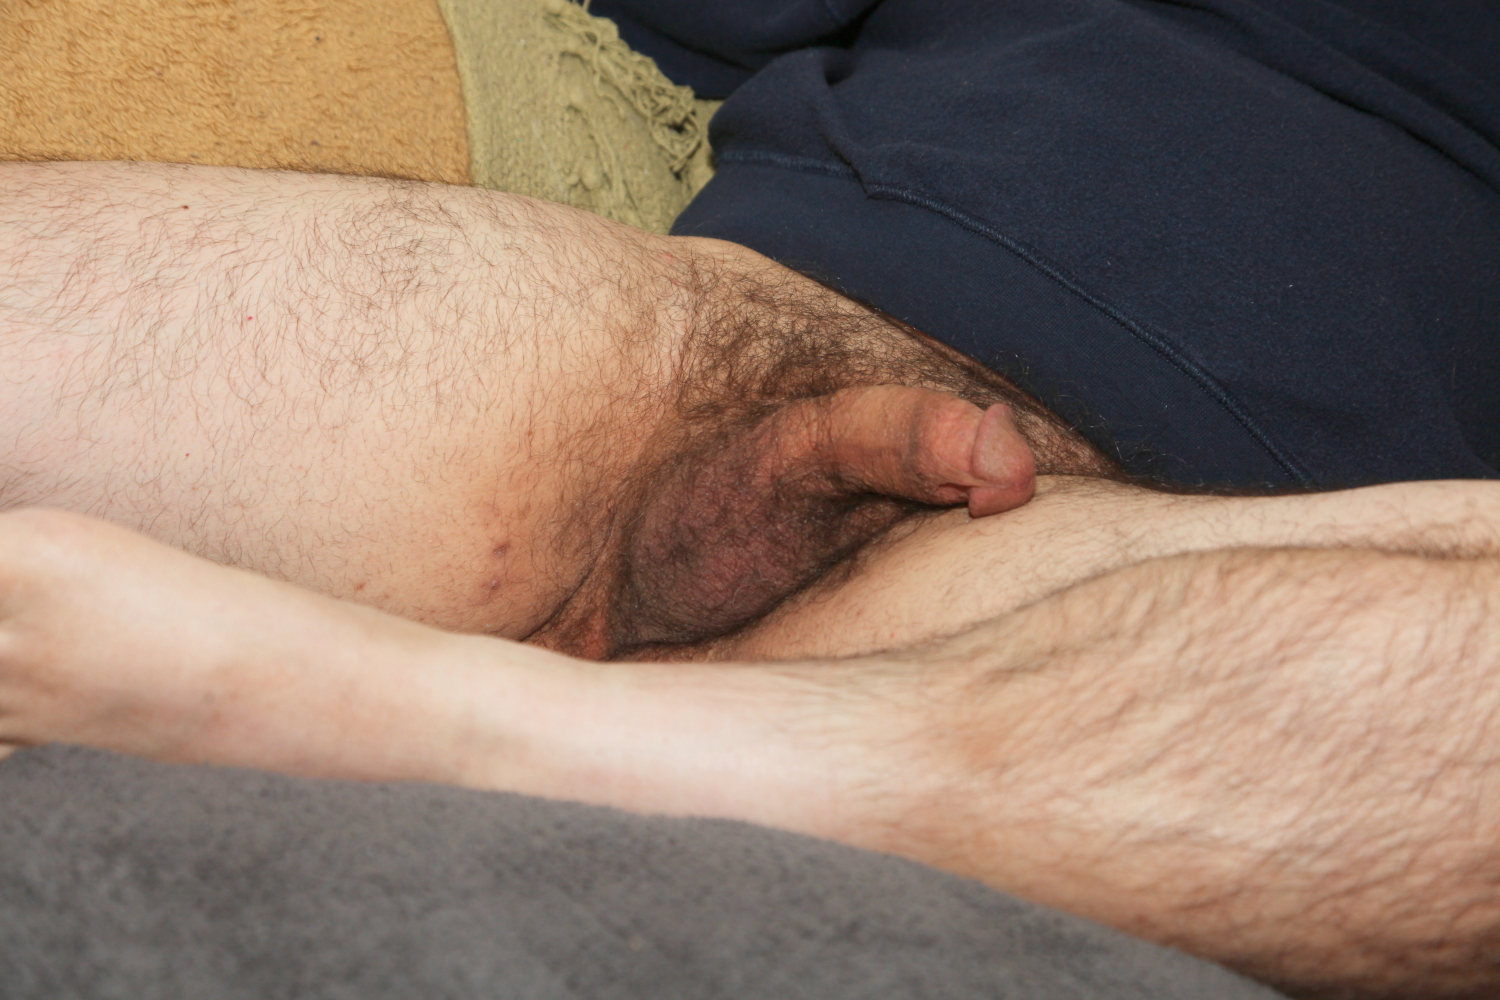 Hunky Gay Guy Shows His Little Cock In Pov - Ass Point-1305